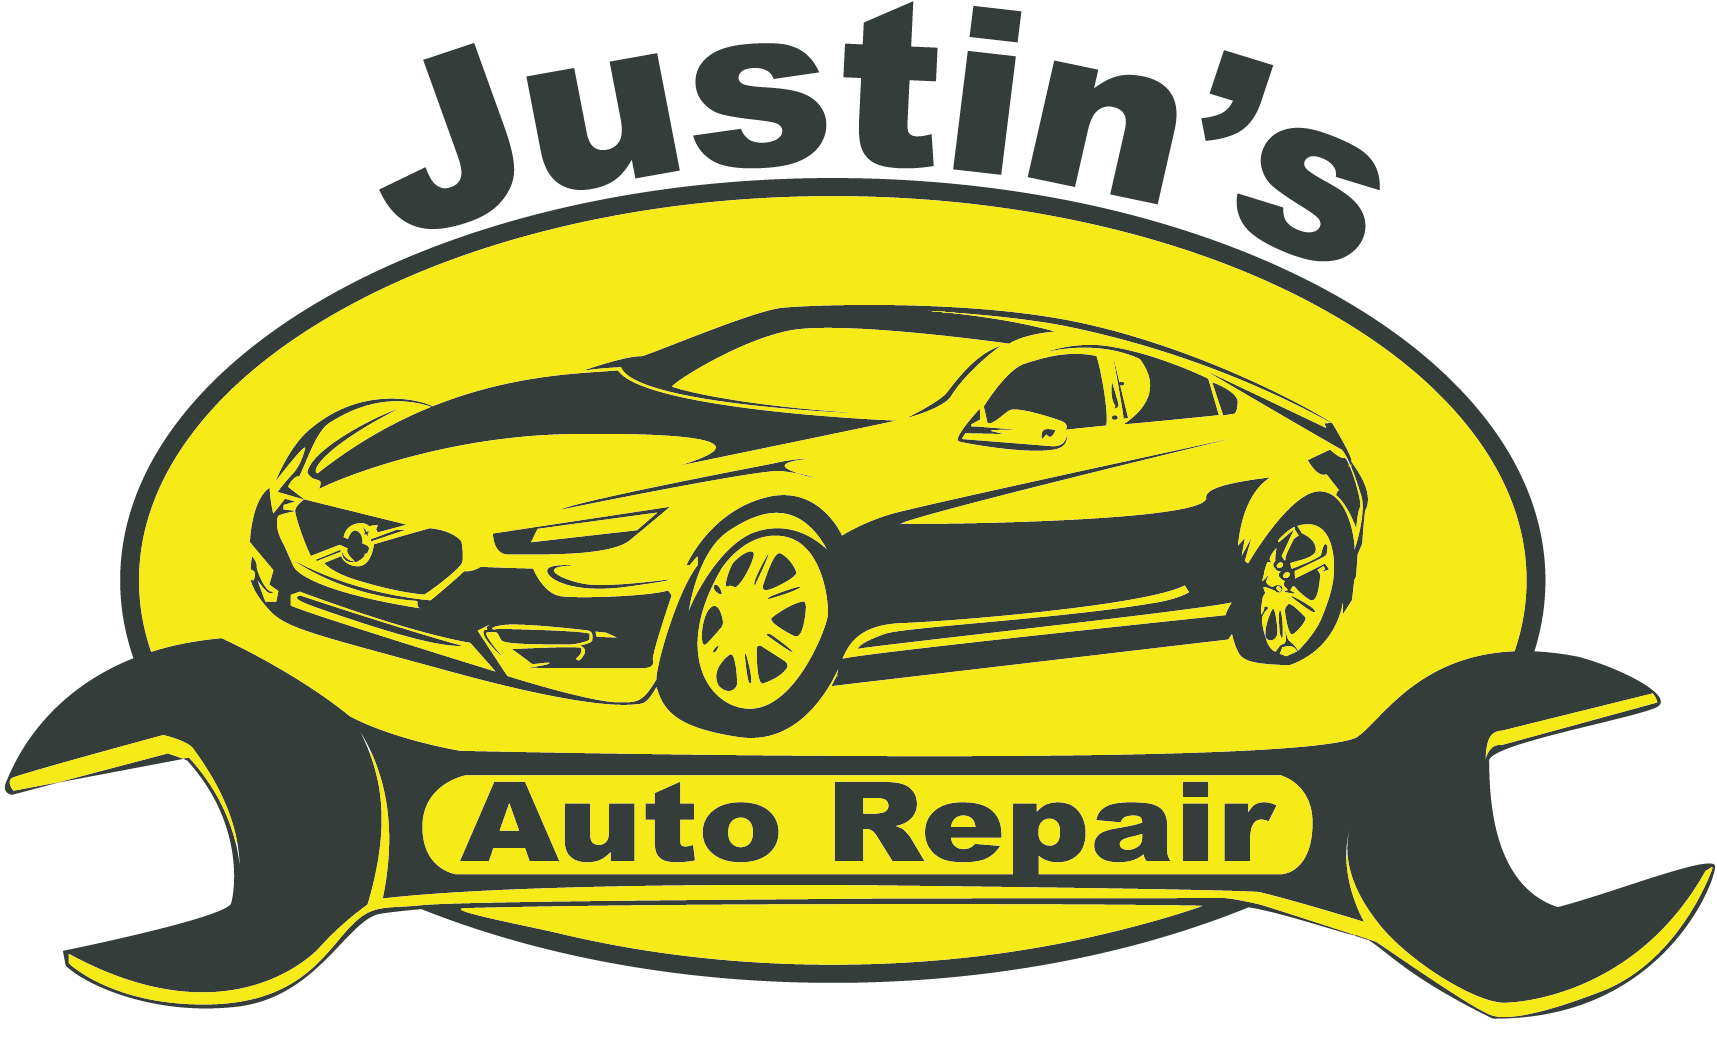 Car repair clipart free clipart black and white Our History | Justin's Auto Repair clipart black and white